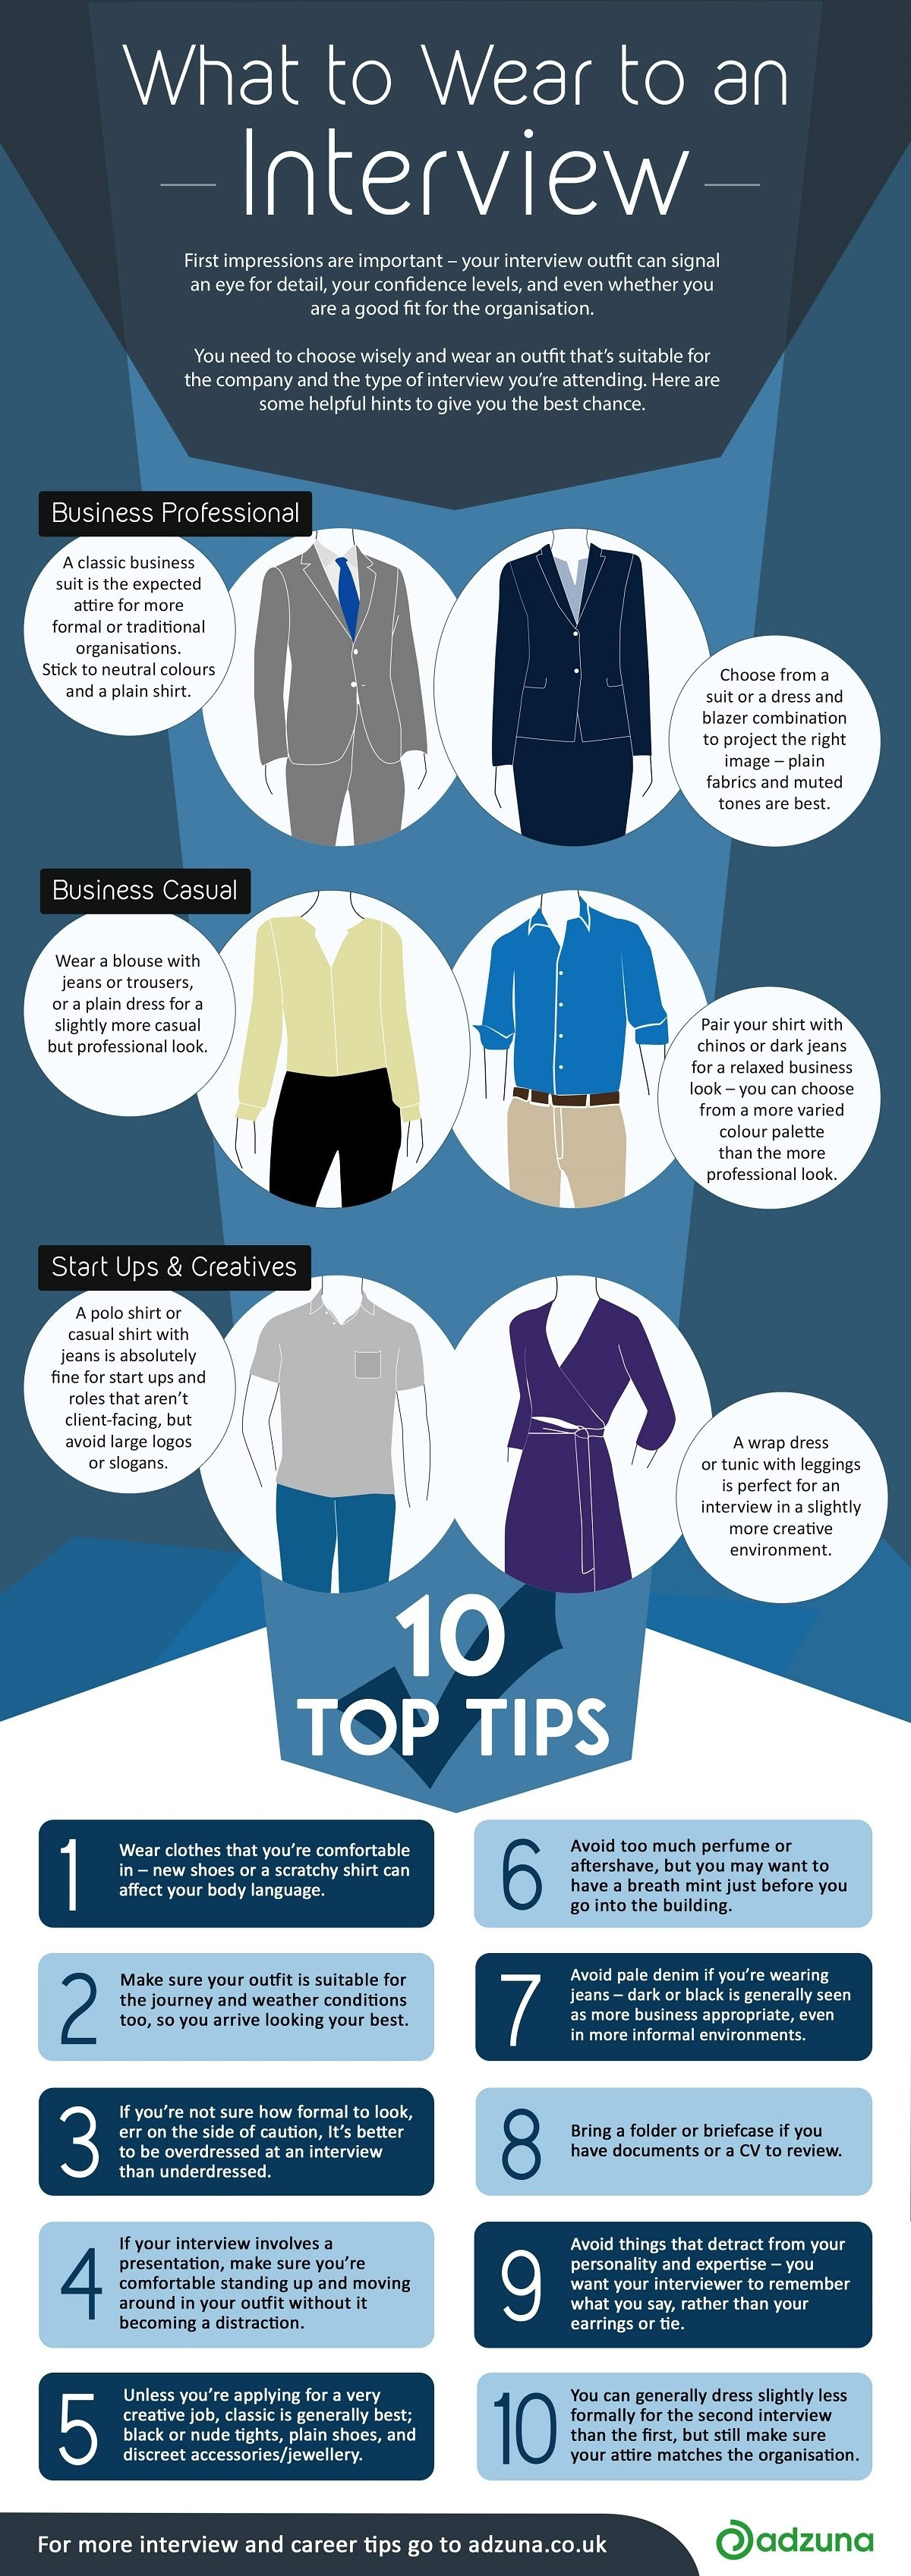 What to Wear to An Interview #Infographic